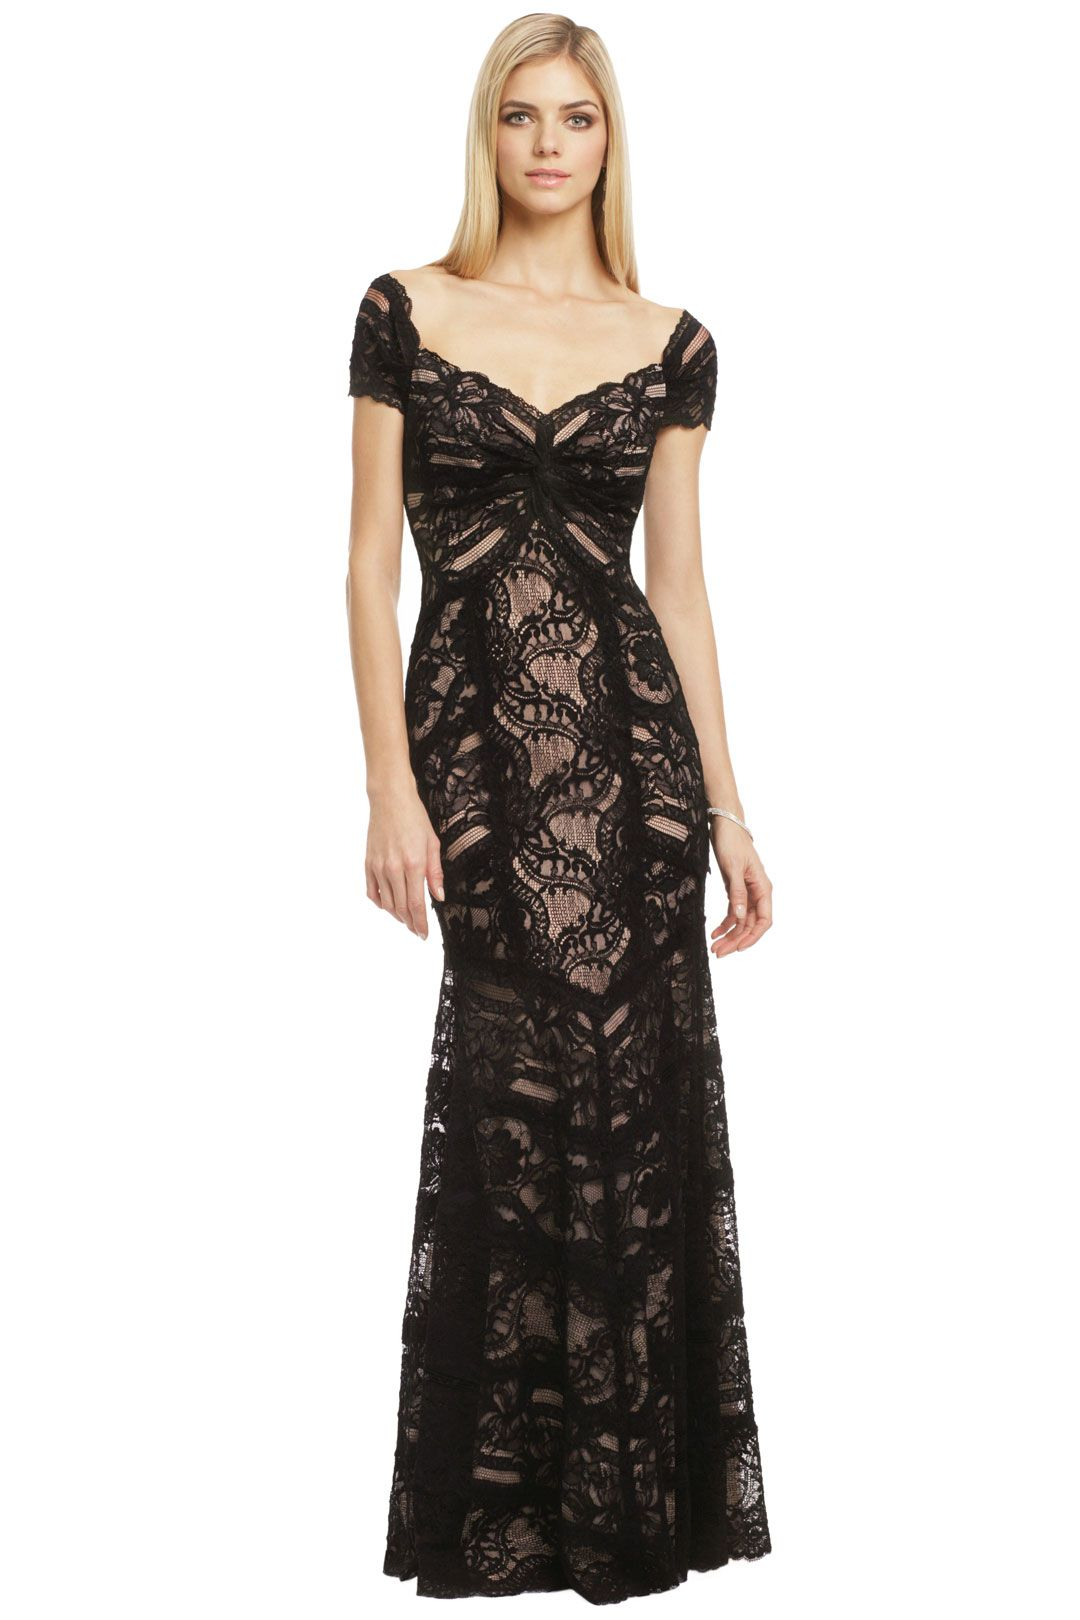 Dresses   Skirts: Shop my Favorites | Wedding, Lace gowns and Runway